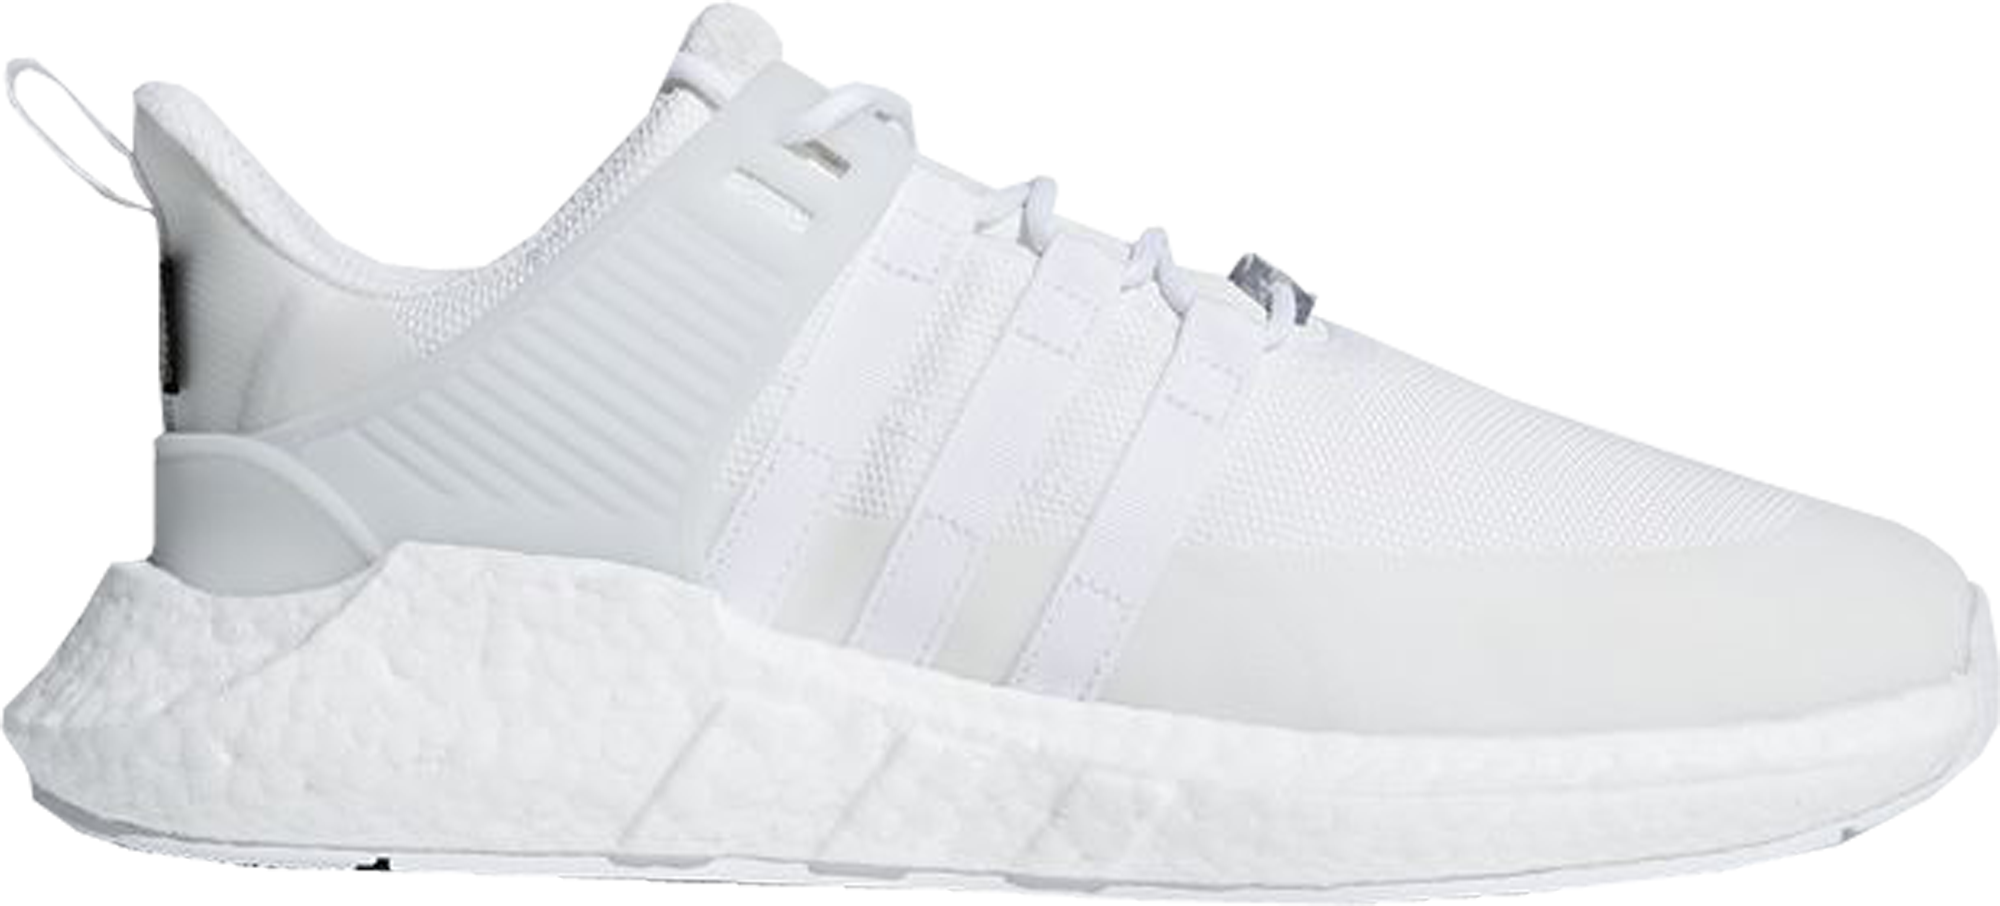 adidas EQT Support 93/17 Gore-tex Reflect & Protect (White)